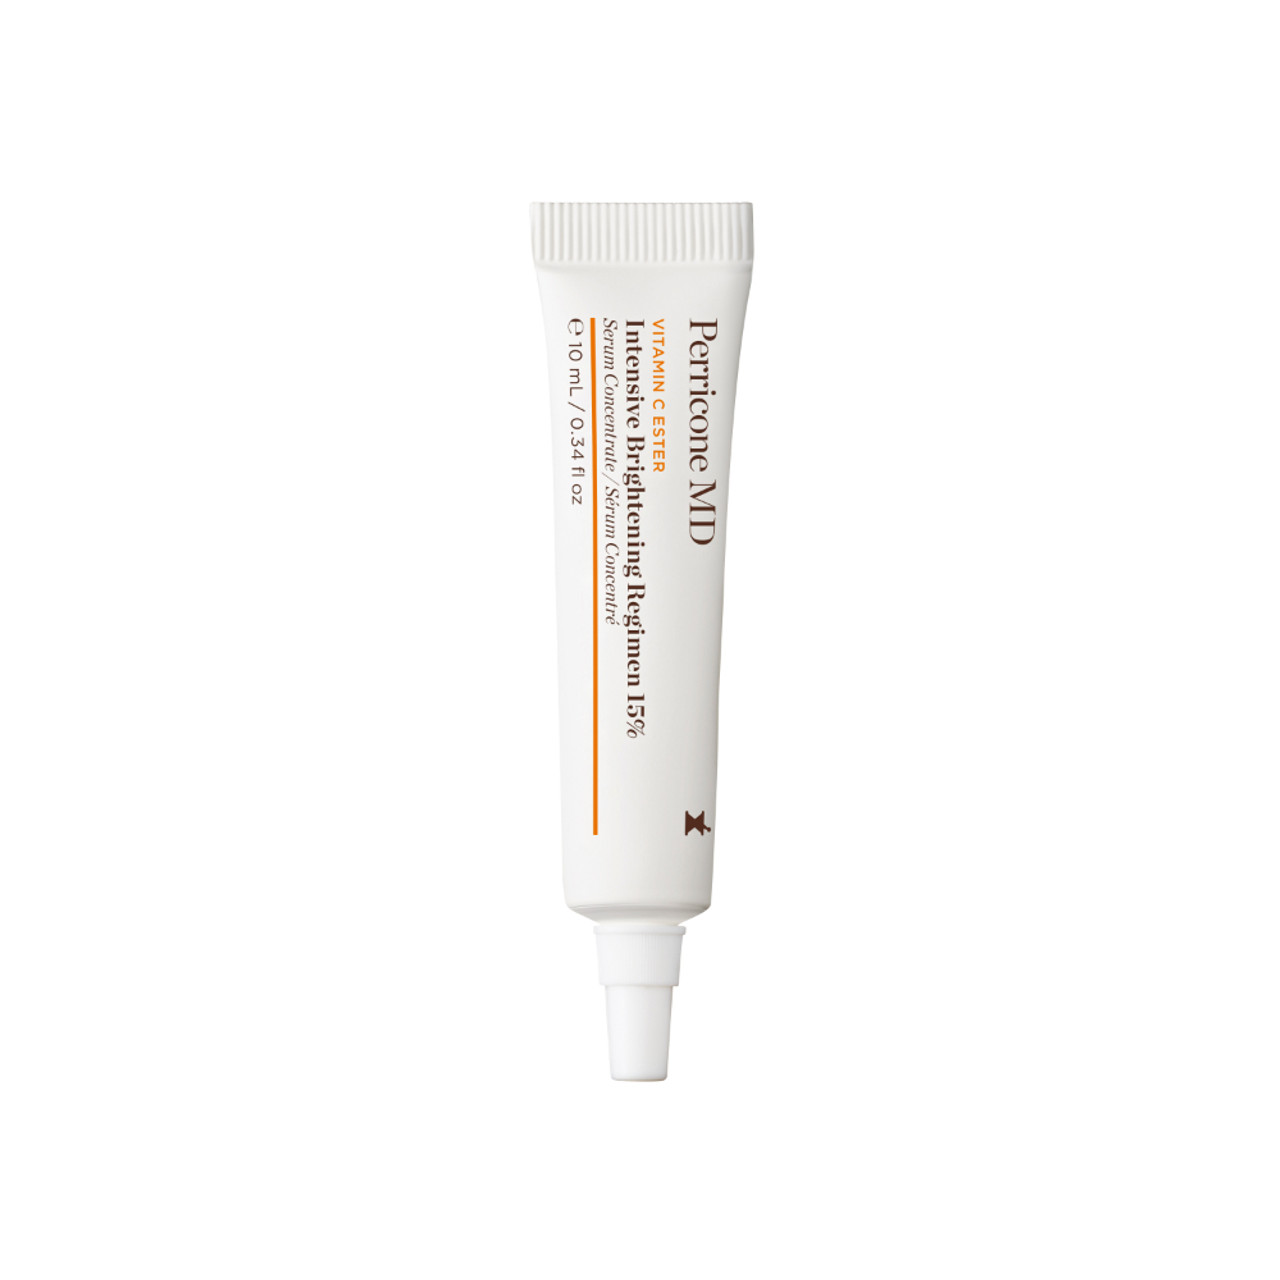 Perricone MD Vitamin C Ester Intensive Brightening Regimen 15%